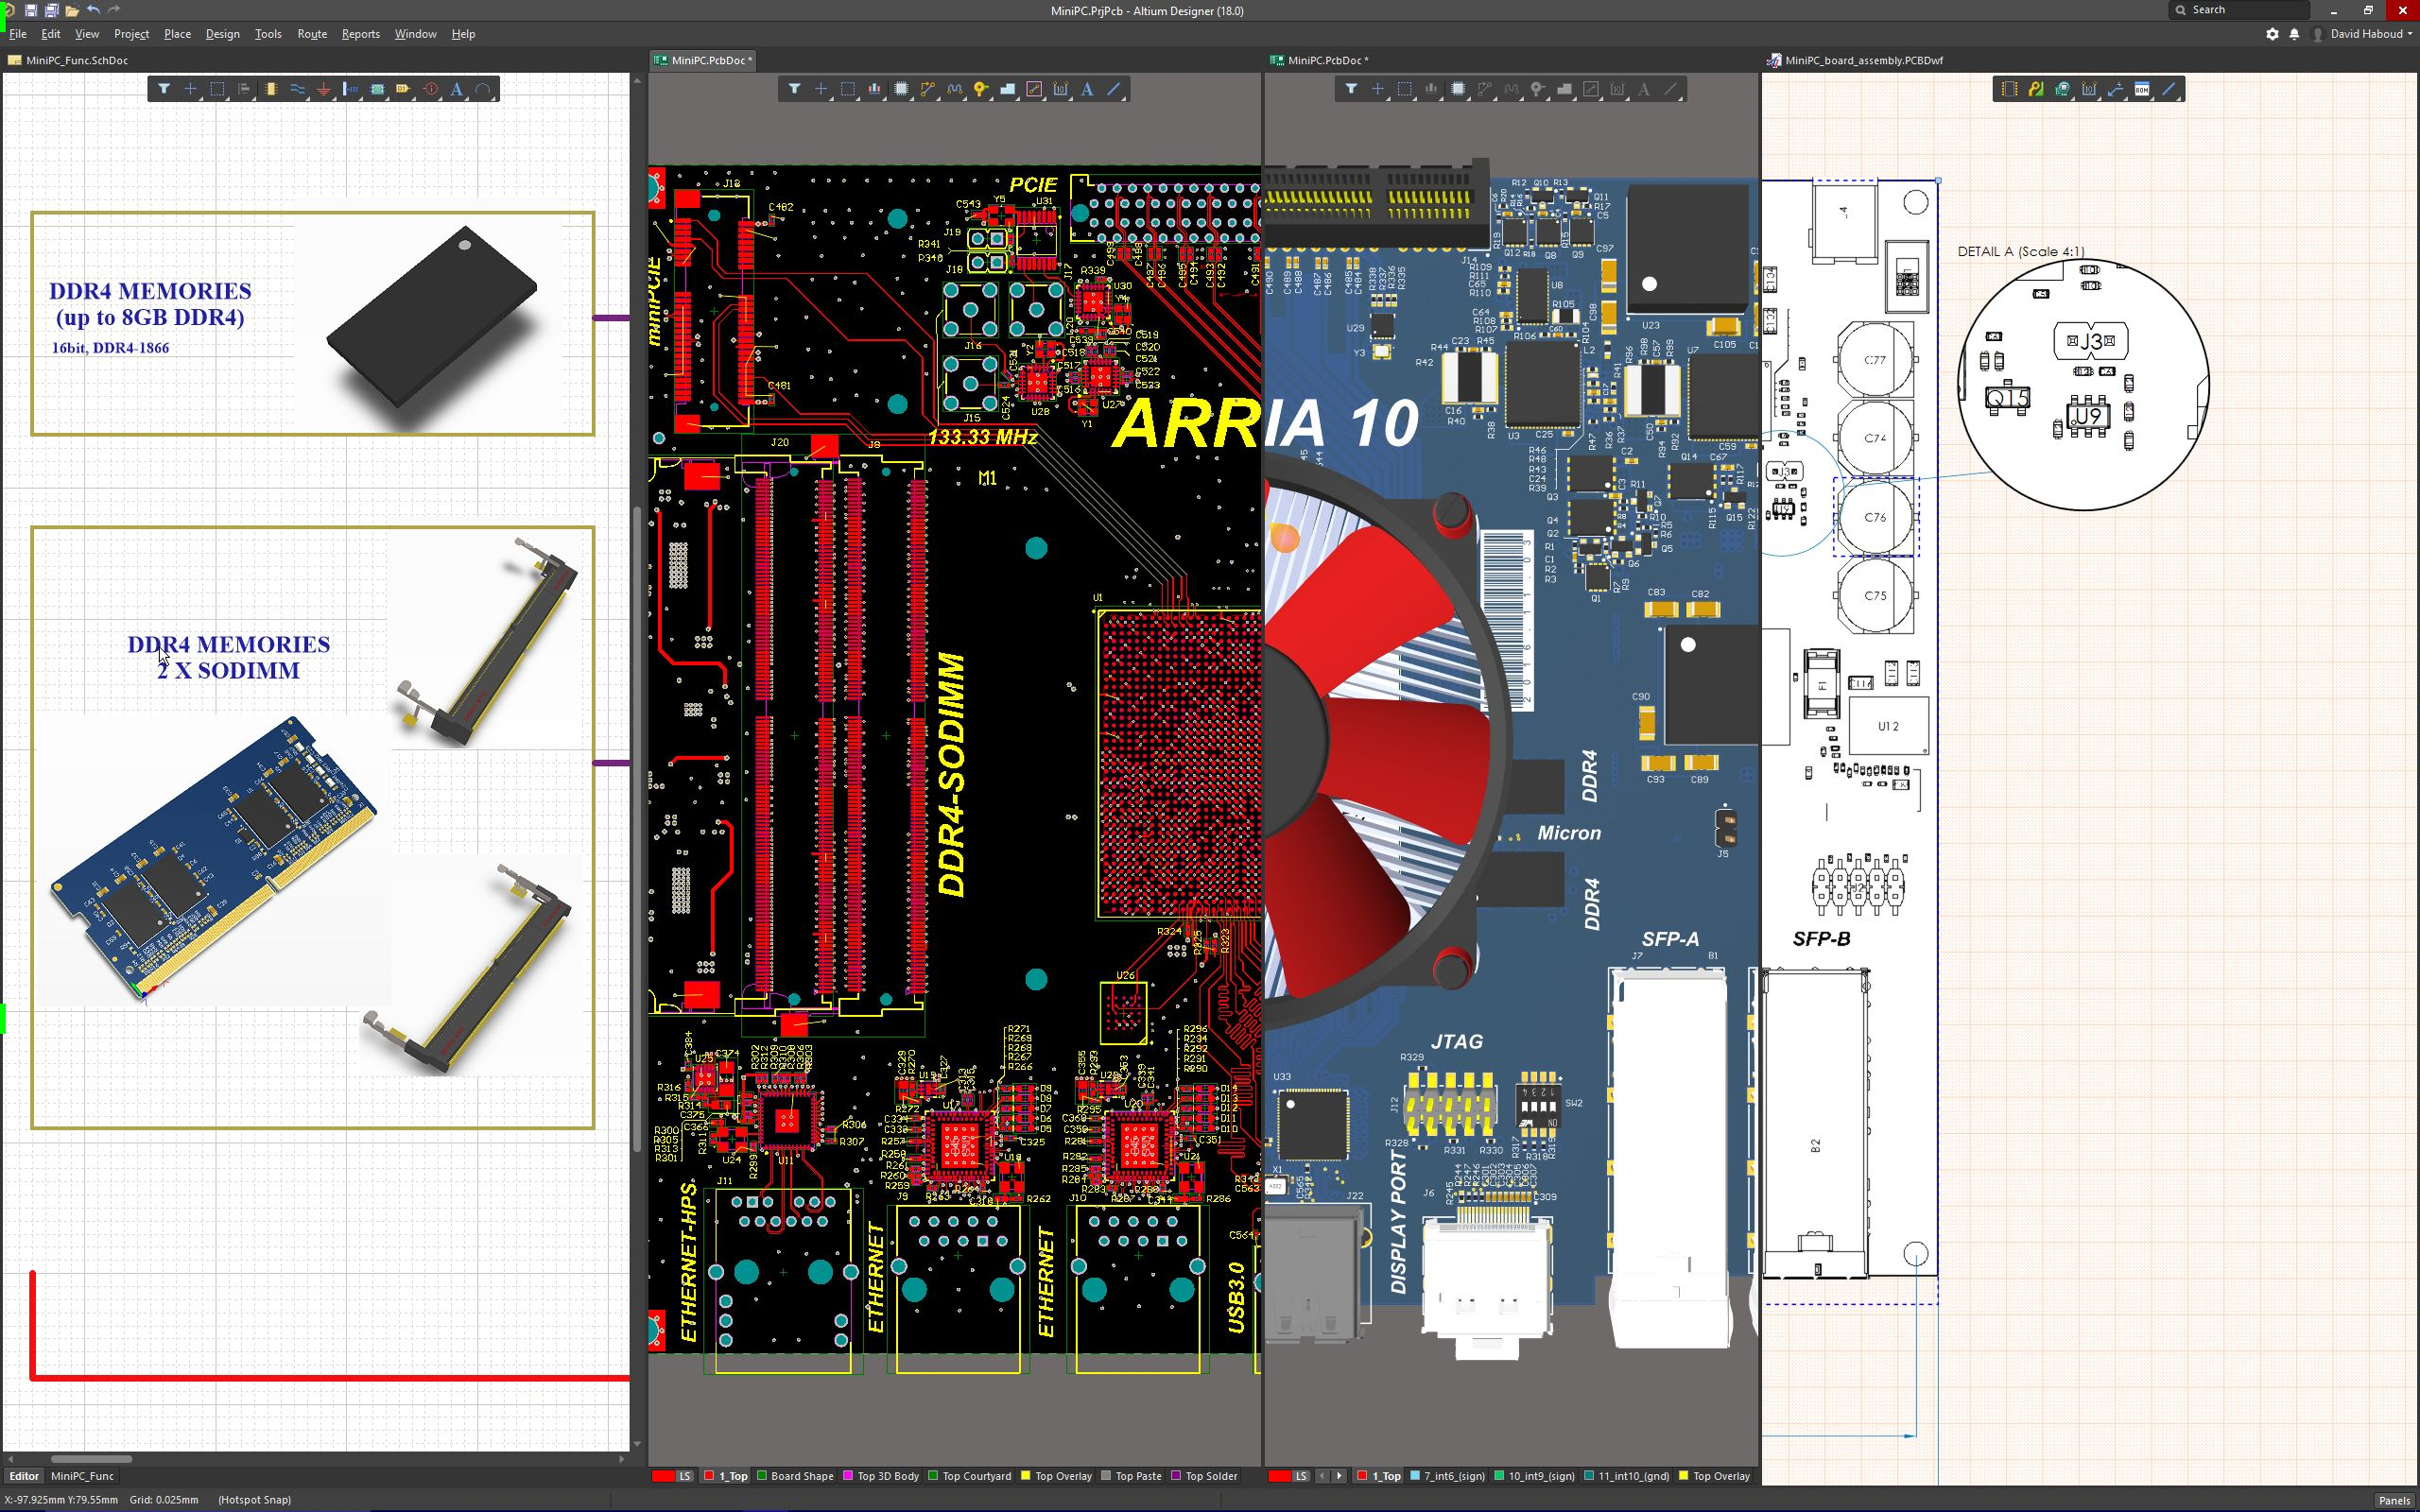 Altium To Implement C3d Modeler In Pcb Software New Application Of Circuit Boards Fabrication And Low Cost Design Services Printed Board Manufacturing Process By